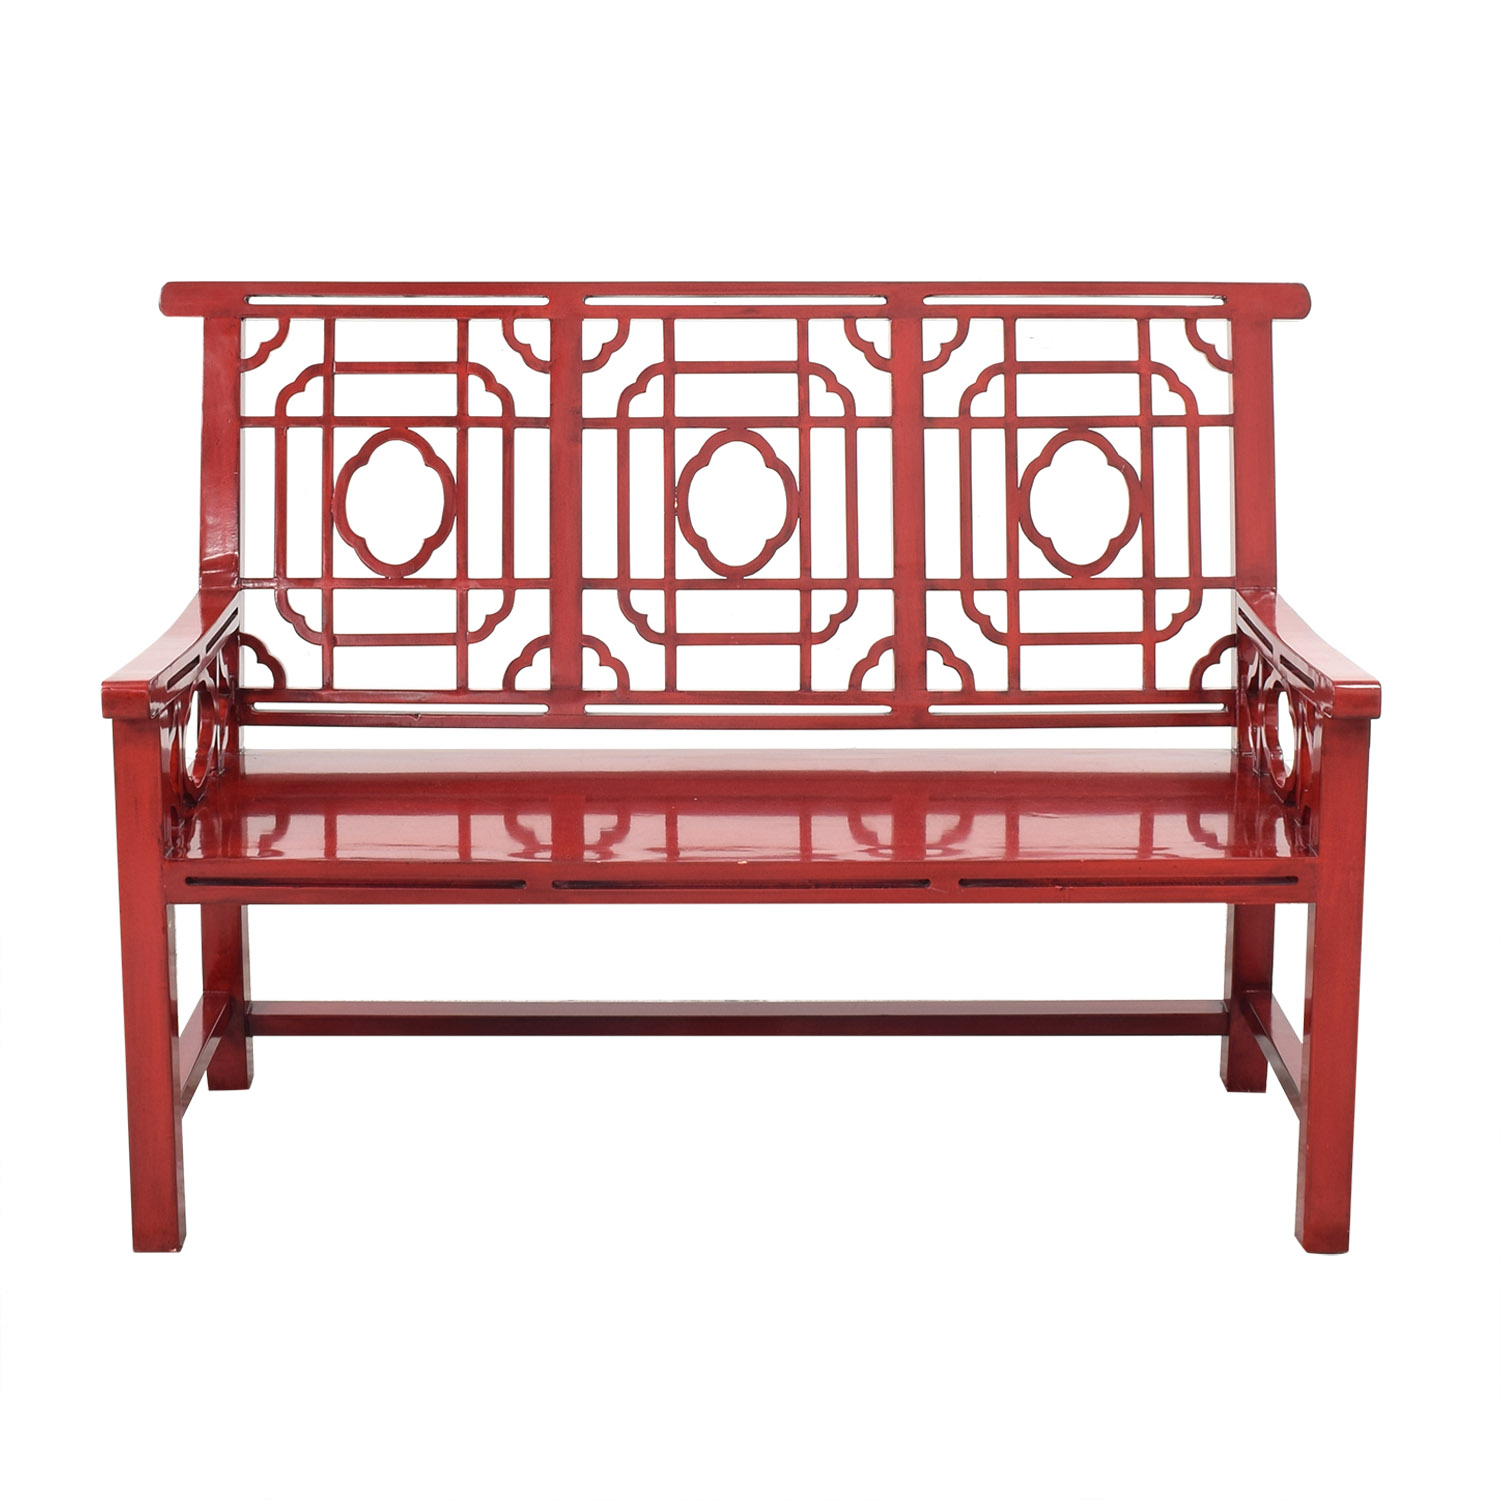 buy Neiman Marcus Neiman Marcus Chinese Lacquer Bench online